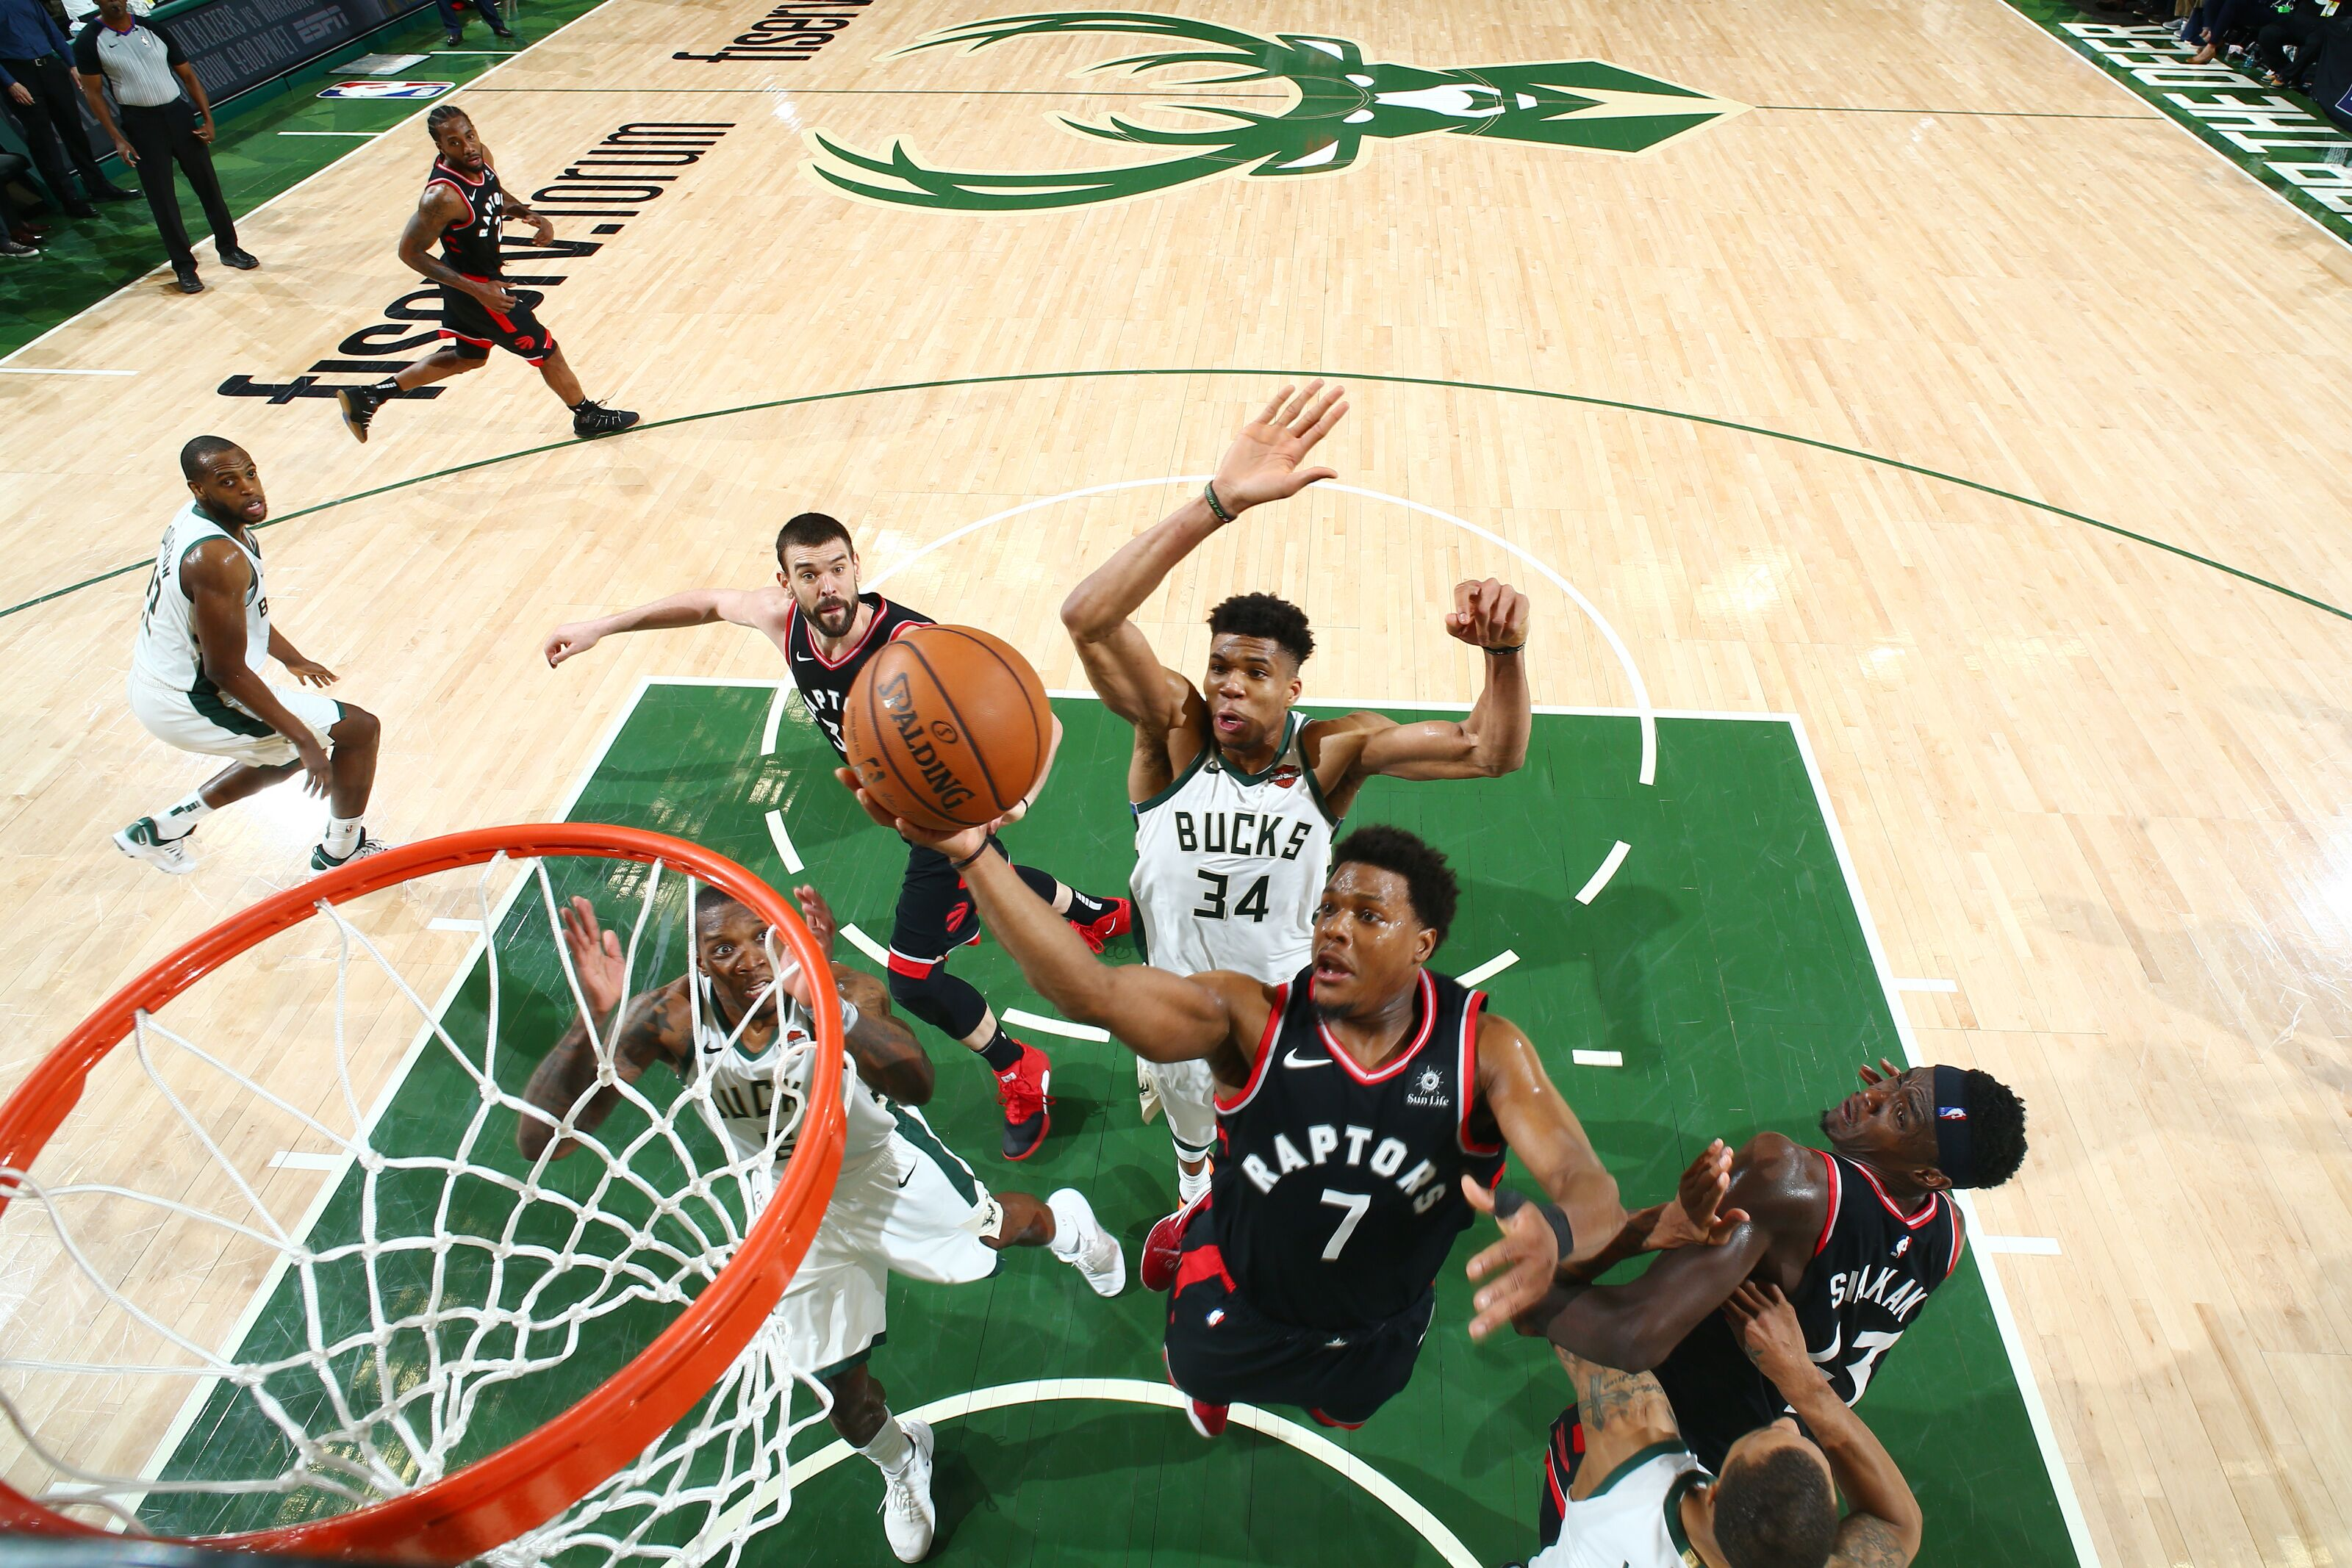 a3a49d89d796 Toronto Raptors  Will Game 1 end Kyle Lowry s offensive struggles